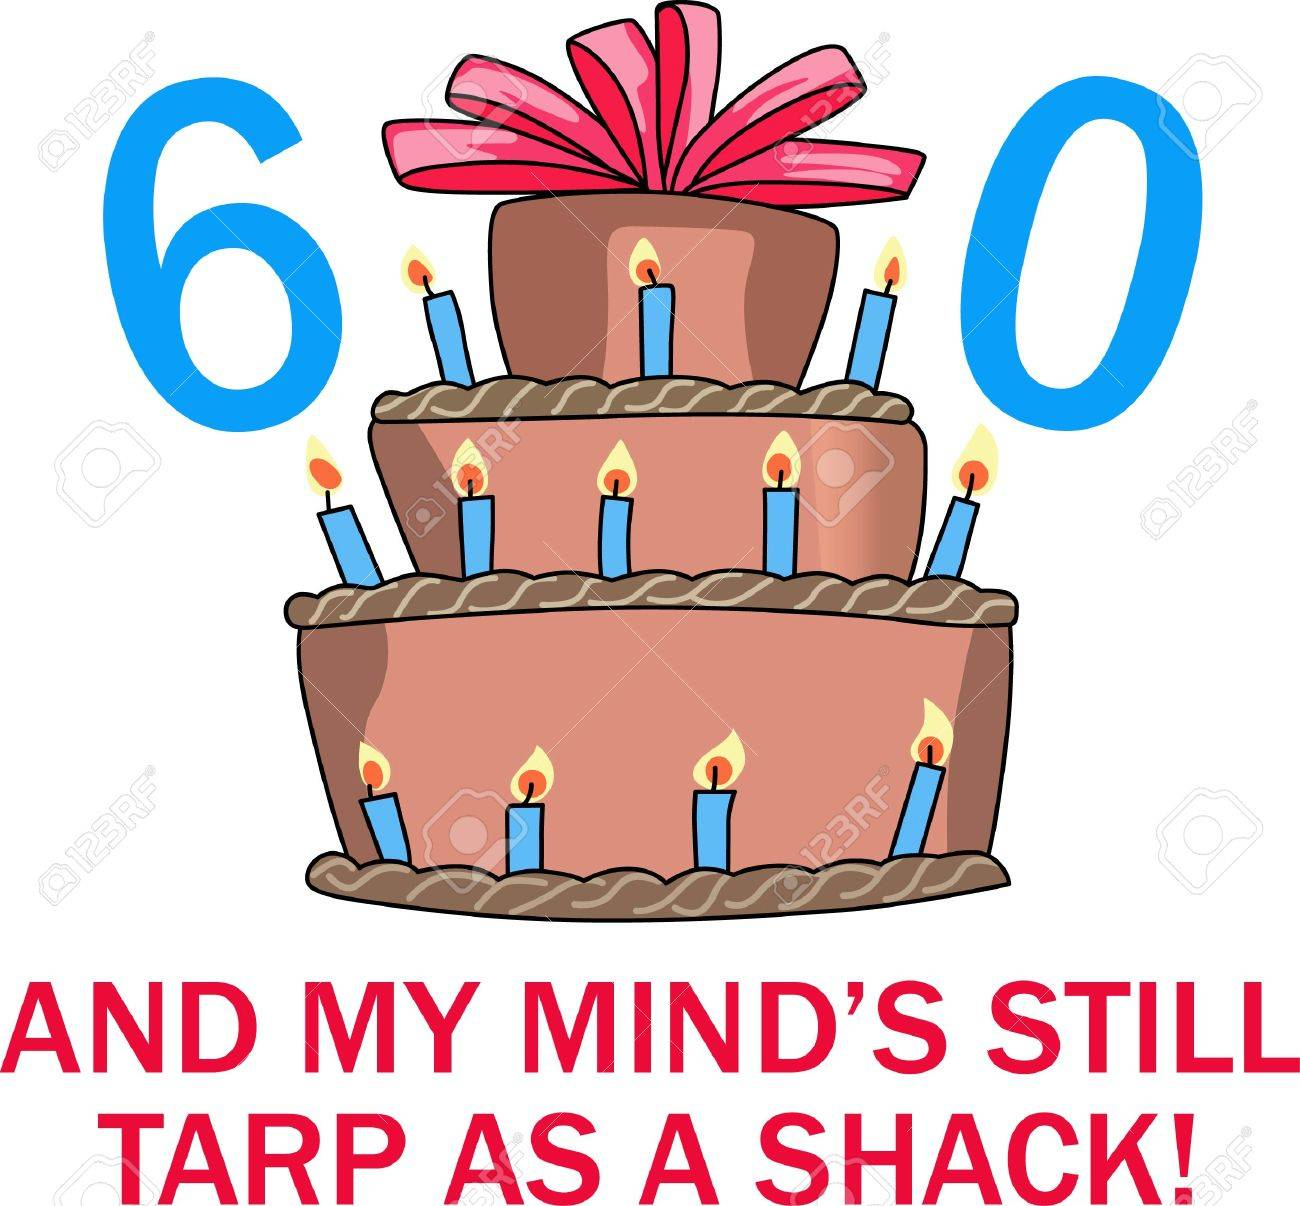 60th birthday clipart images ; 44967173-60th-birthday-cake